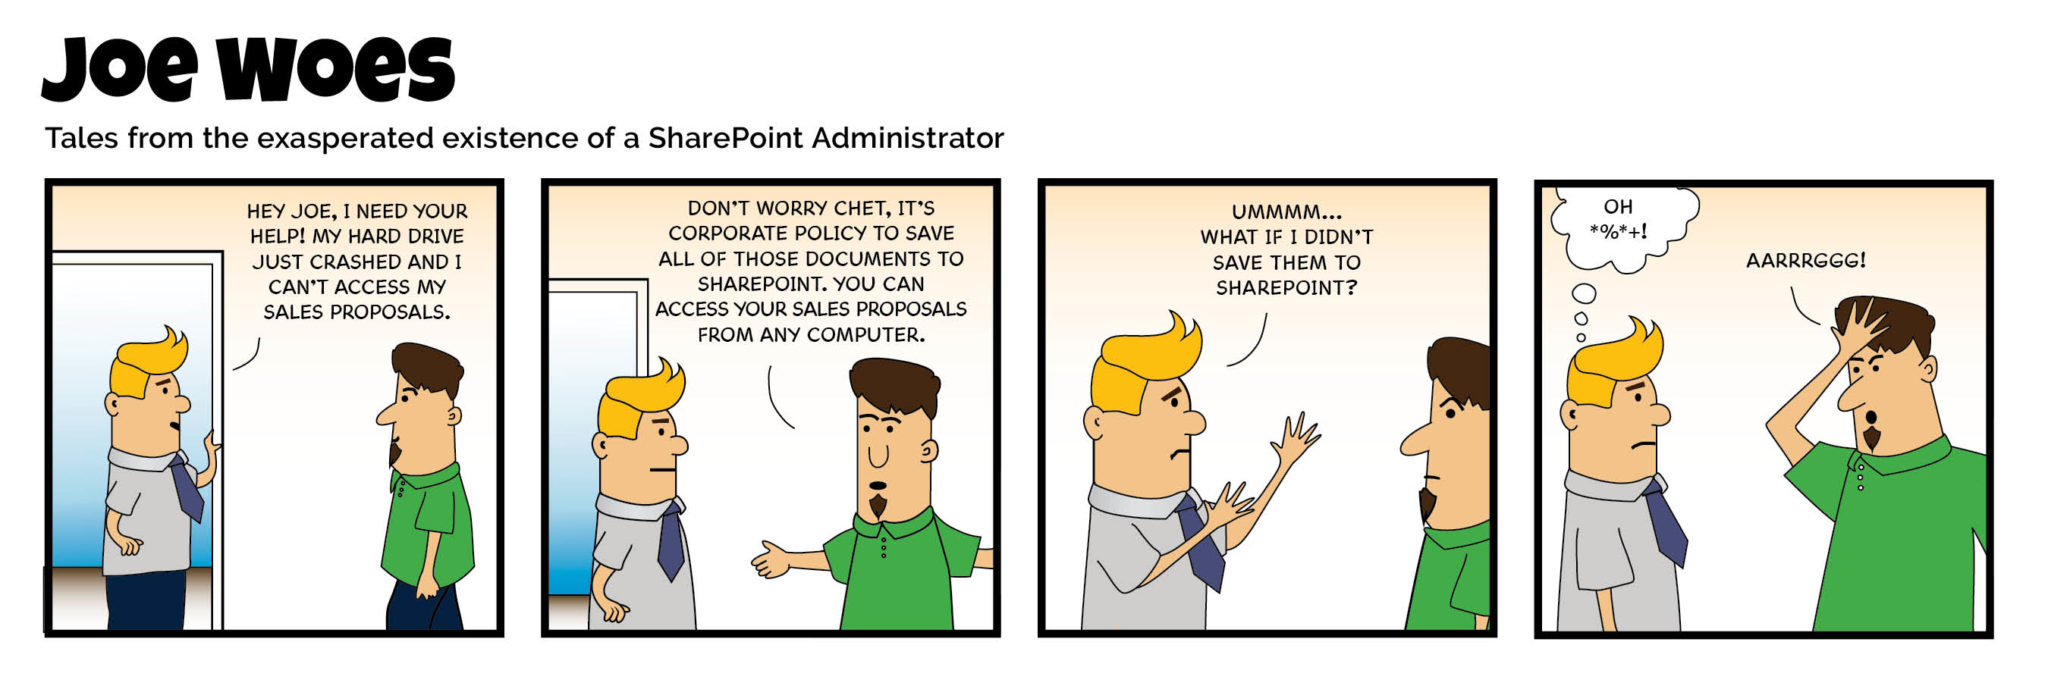 Joe Woes - SharePoint